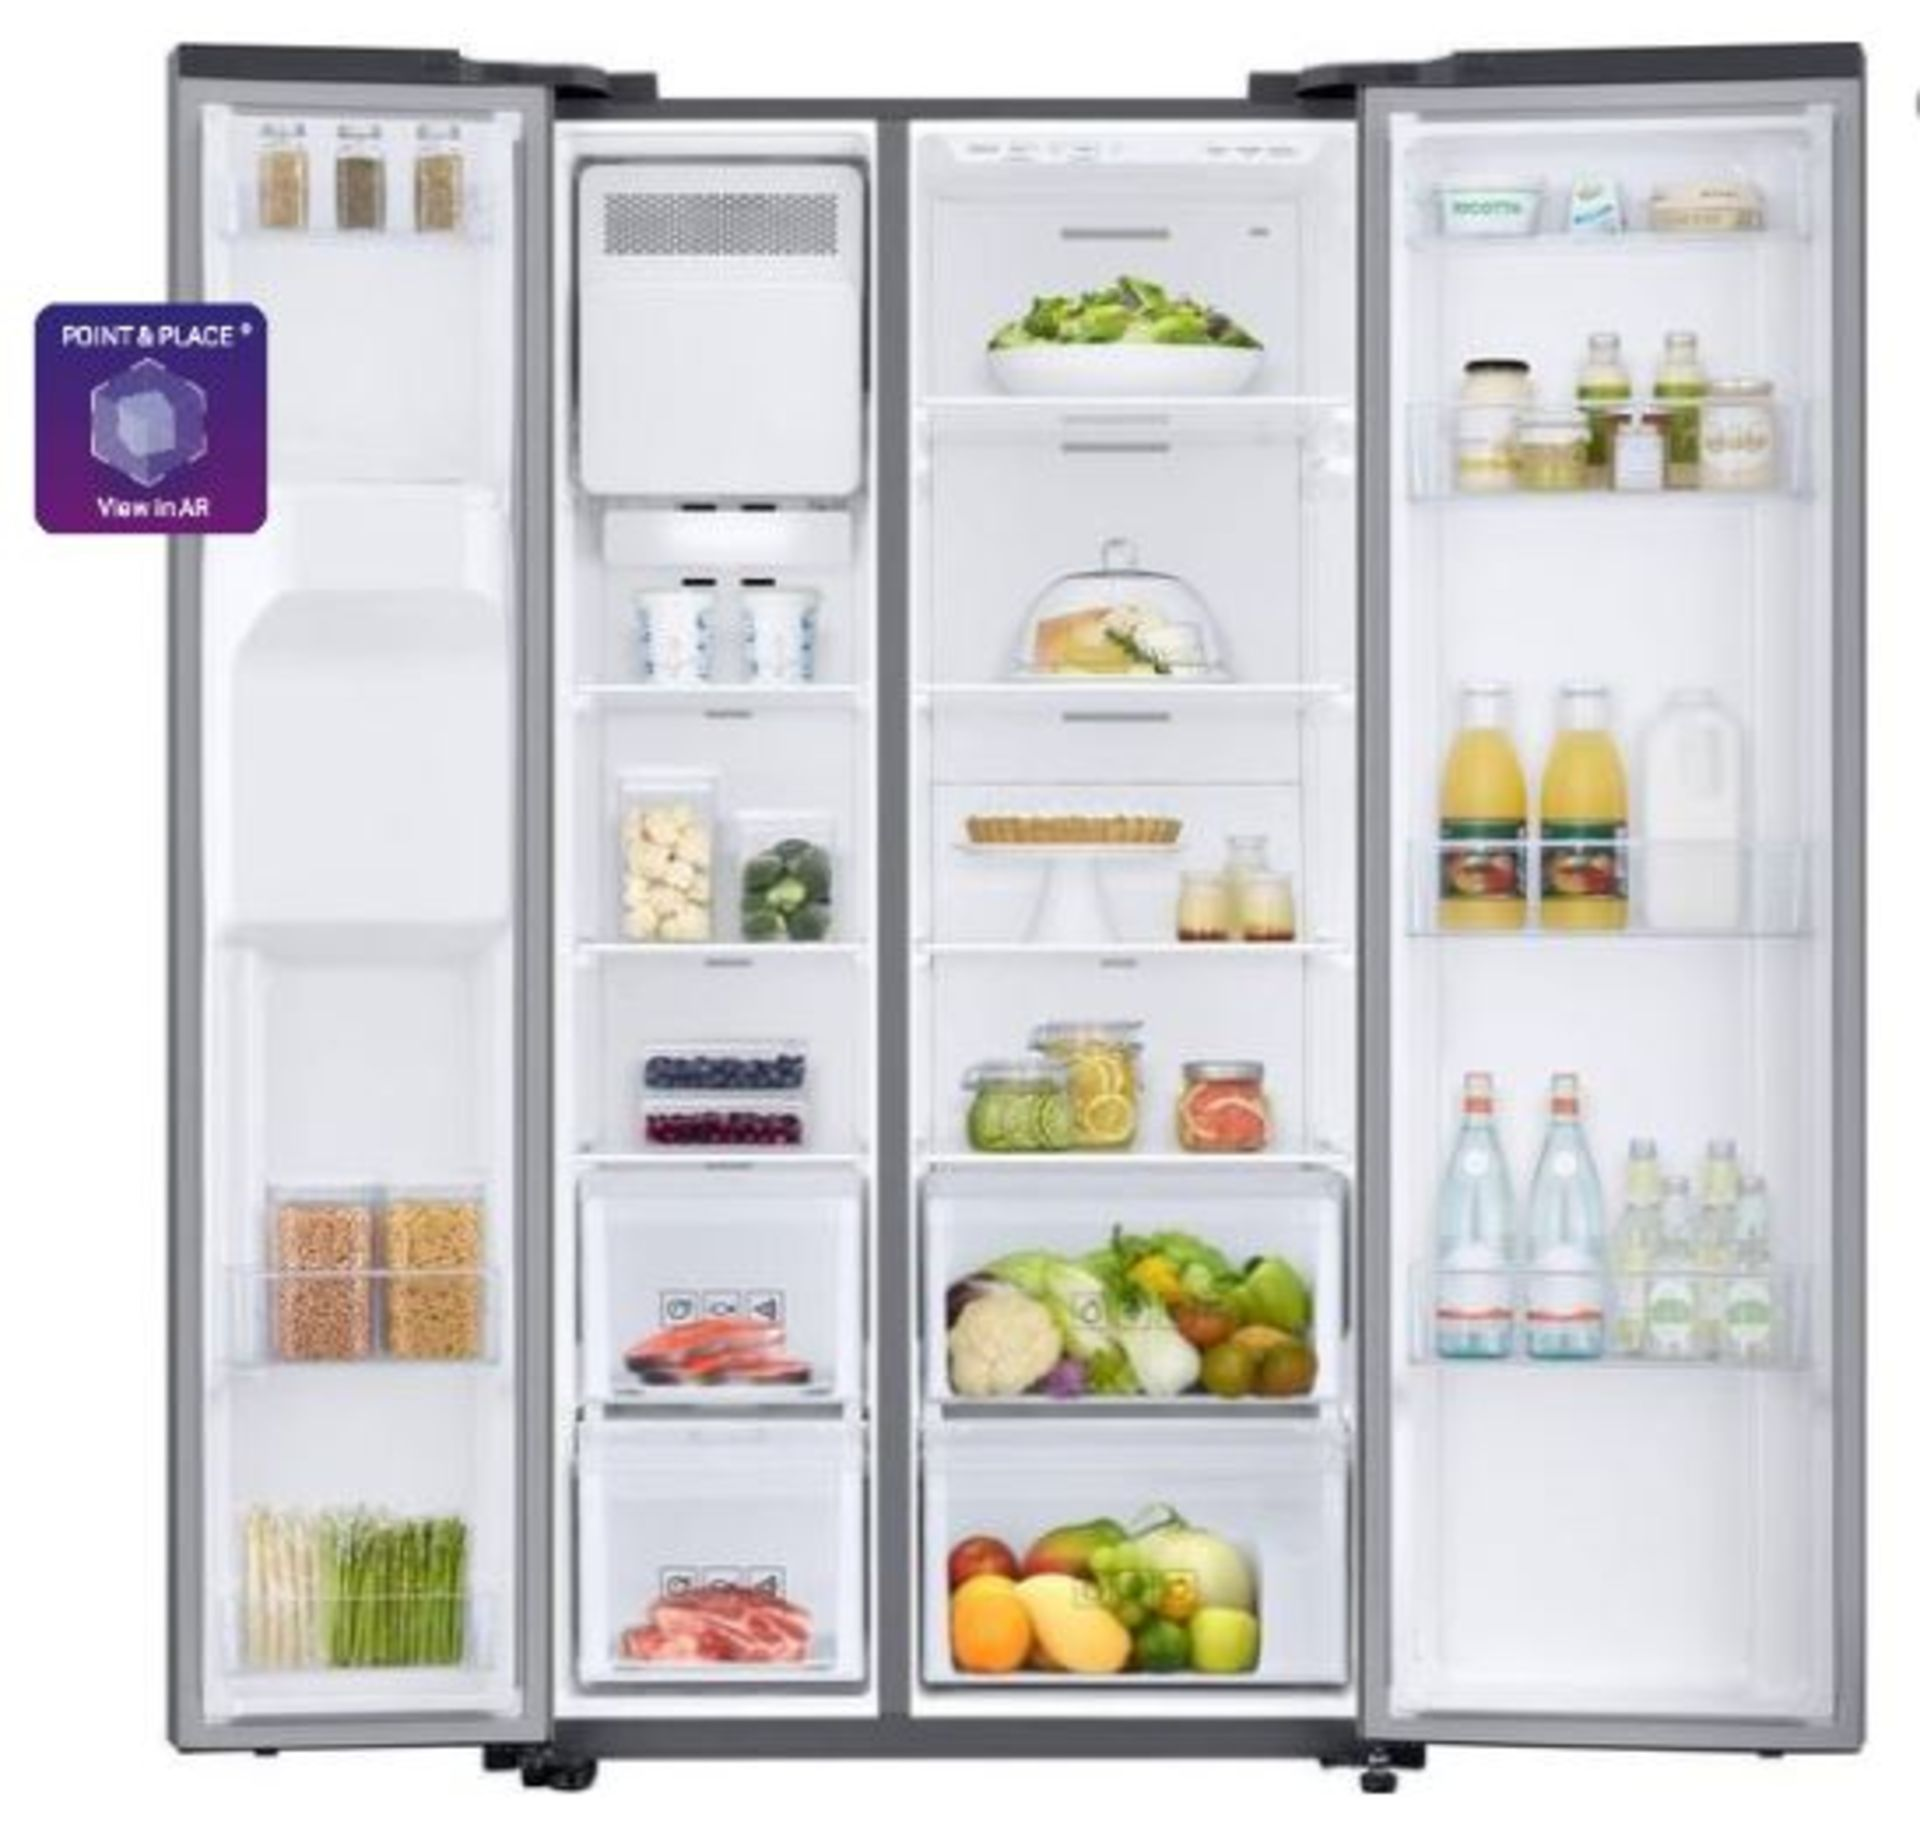 Pallet of 1 Samsung Water & Ice Fridge freezer. Latest selling price £1,299.99* - Image 3 of 7